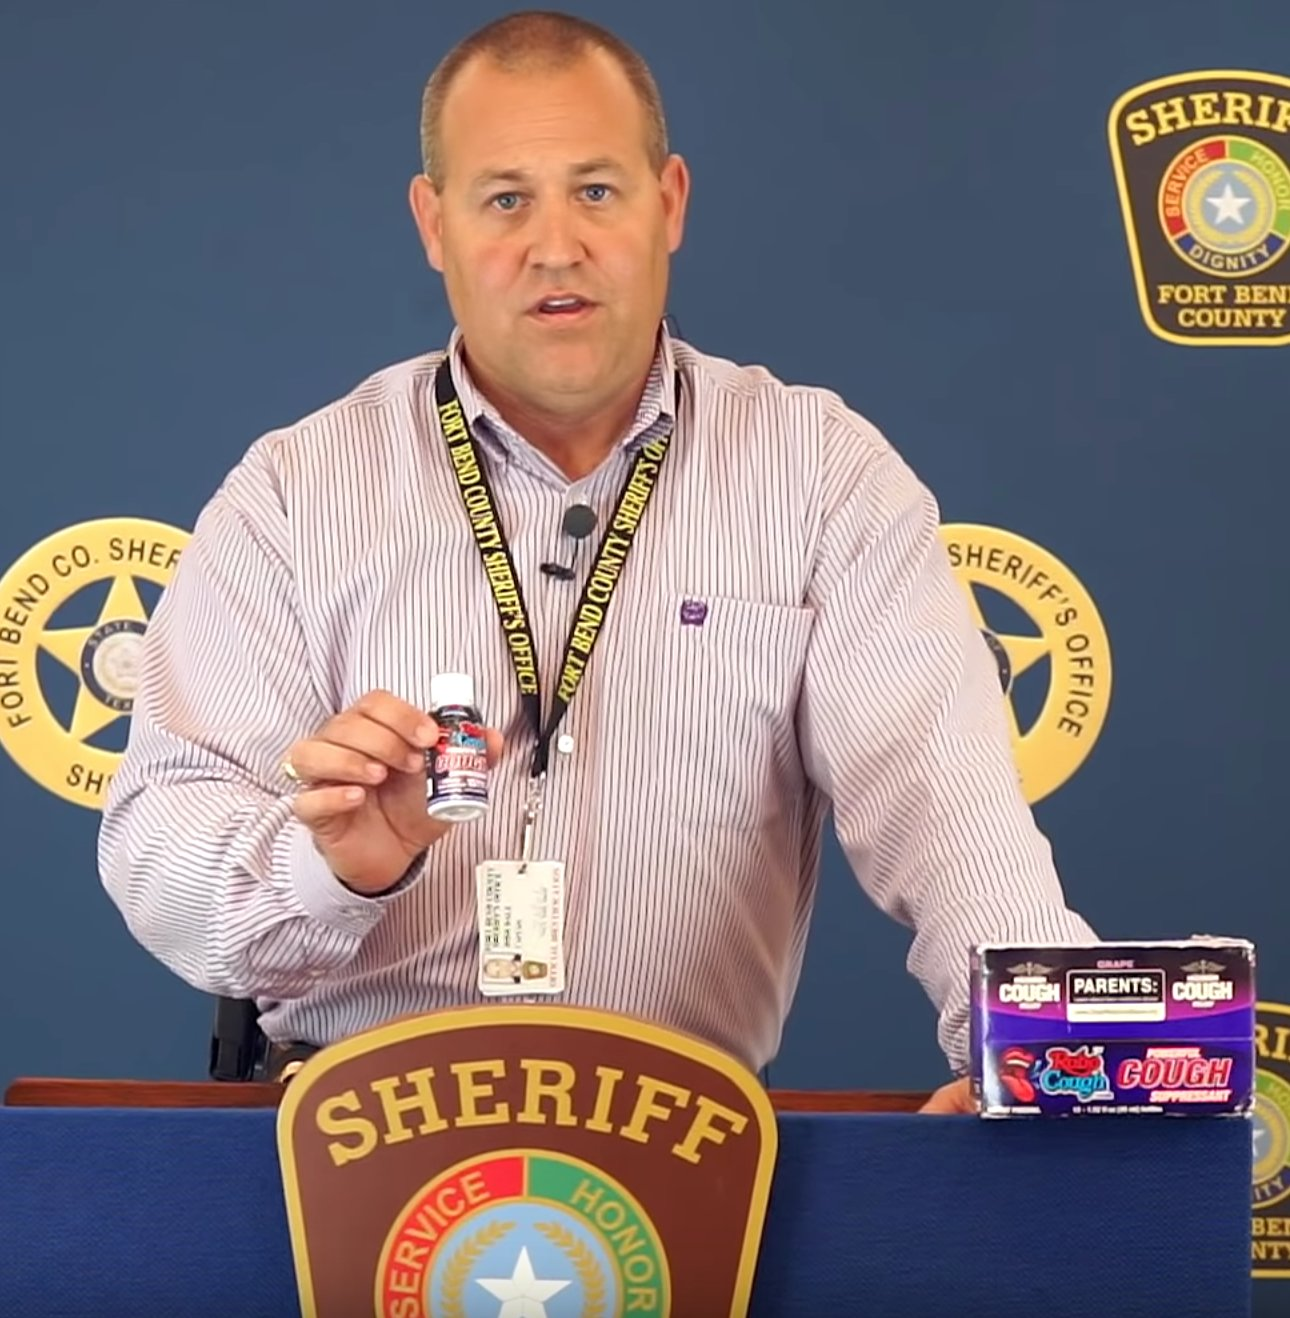 Josh Dale of the Fort Bend County Narcotics Task Force discusses the dangers of the over-the-counter drug Robo Cough.